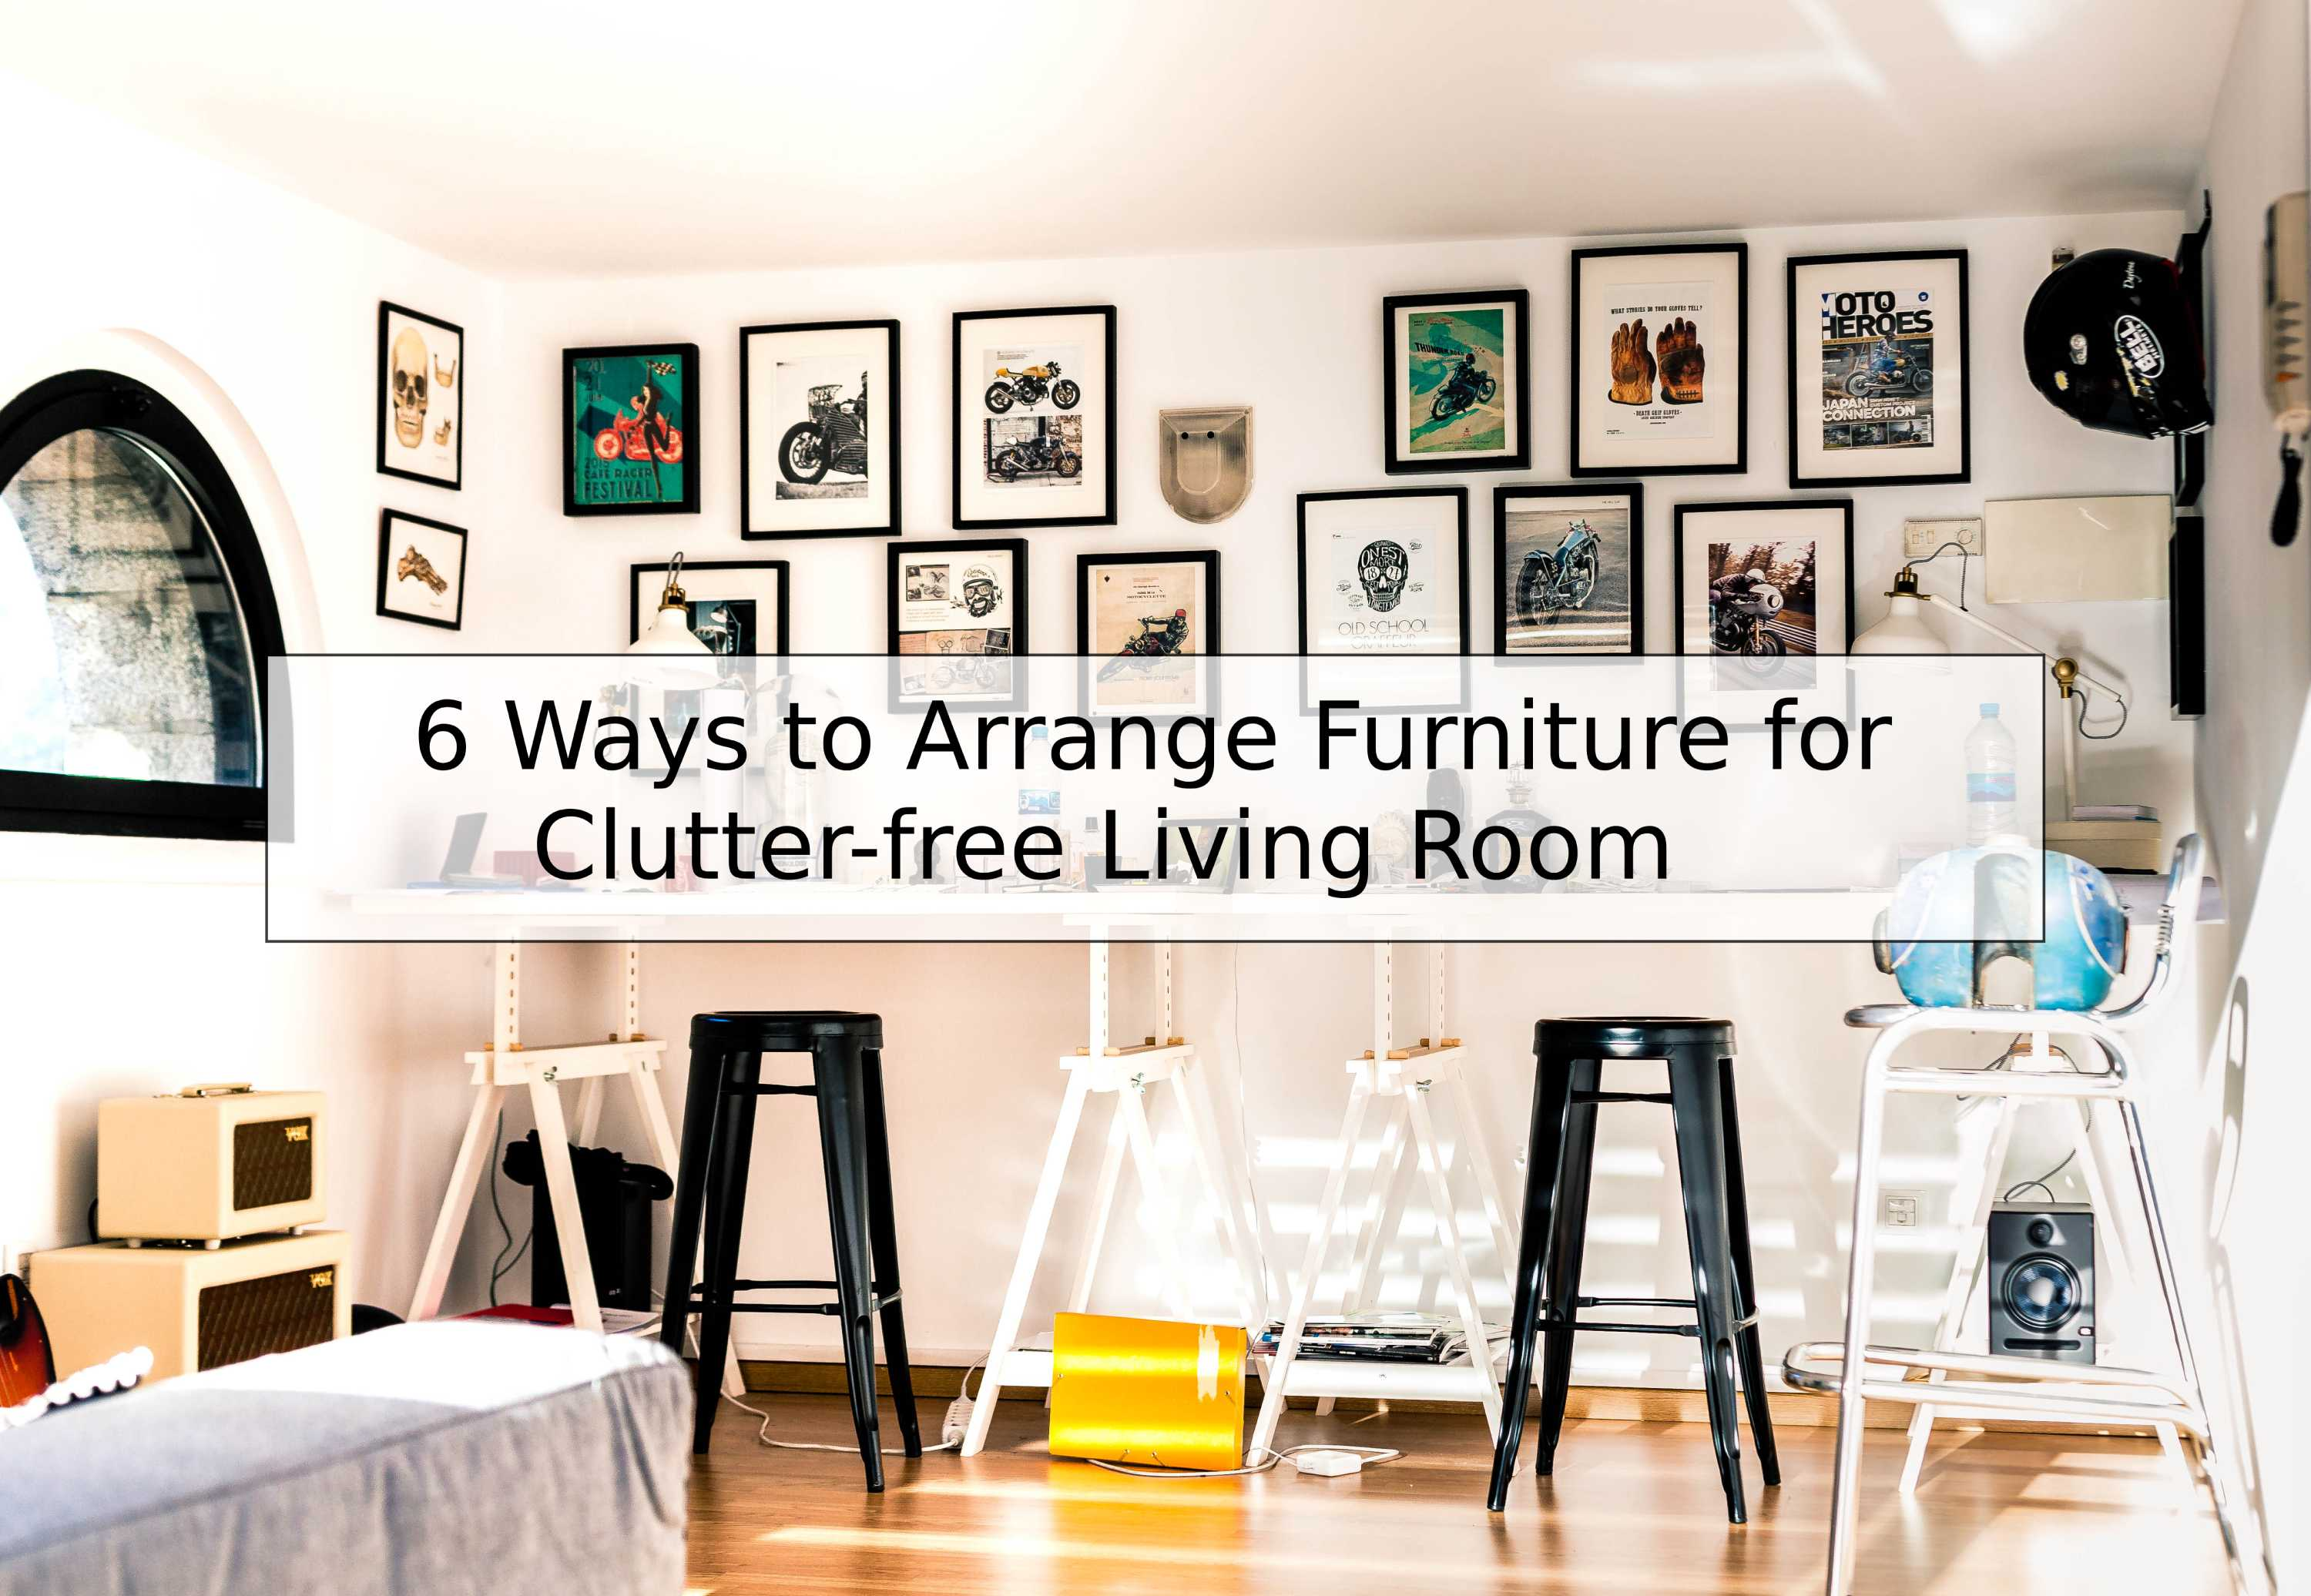 6 Ways To Arrange Furniture For A Clutter Free Living Room | Flats In  Pallavaram